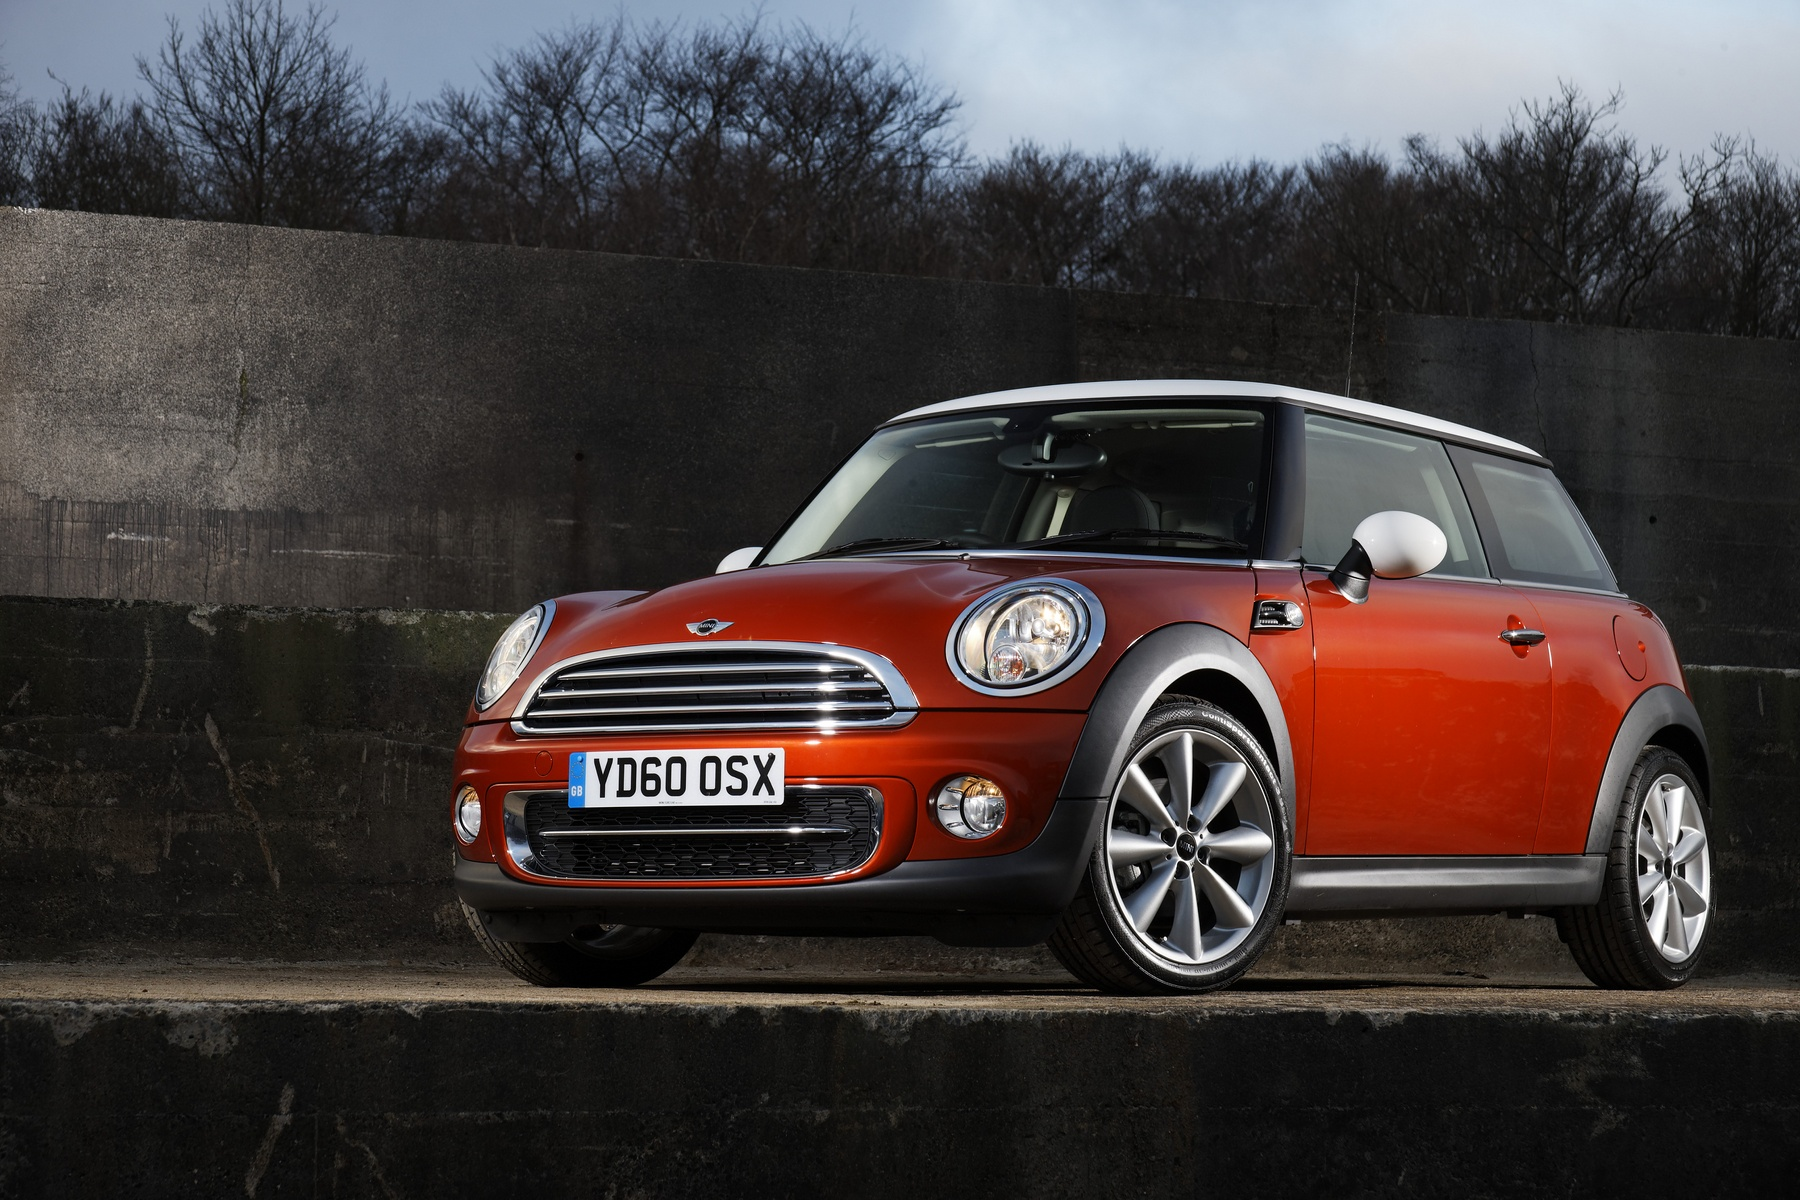 2011 Green Awards: MINI Cooper D was named What Car?'s 'Fun Green Car